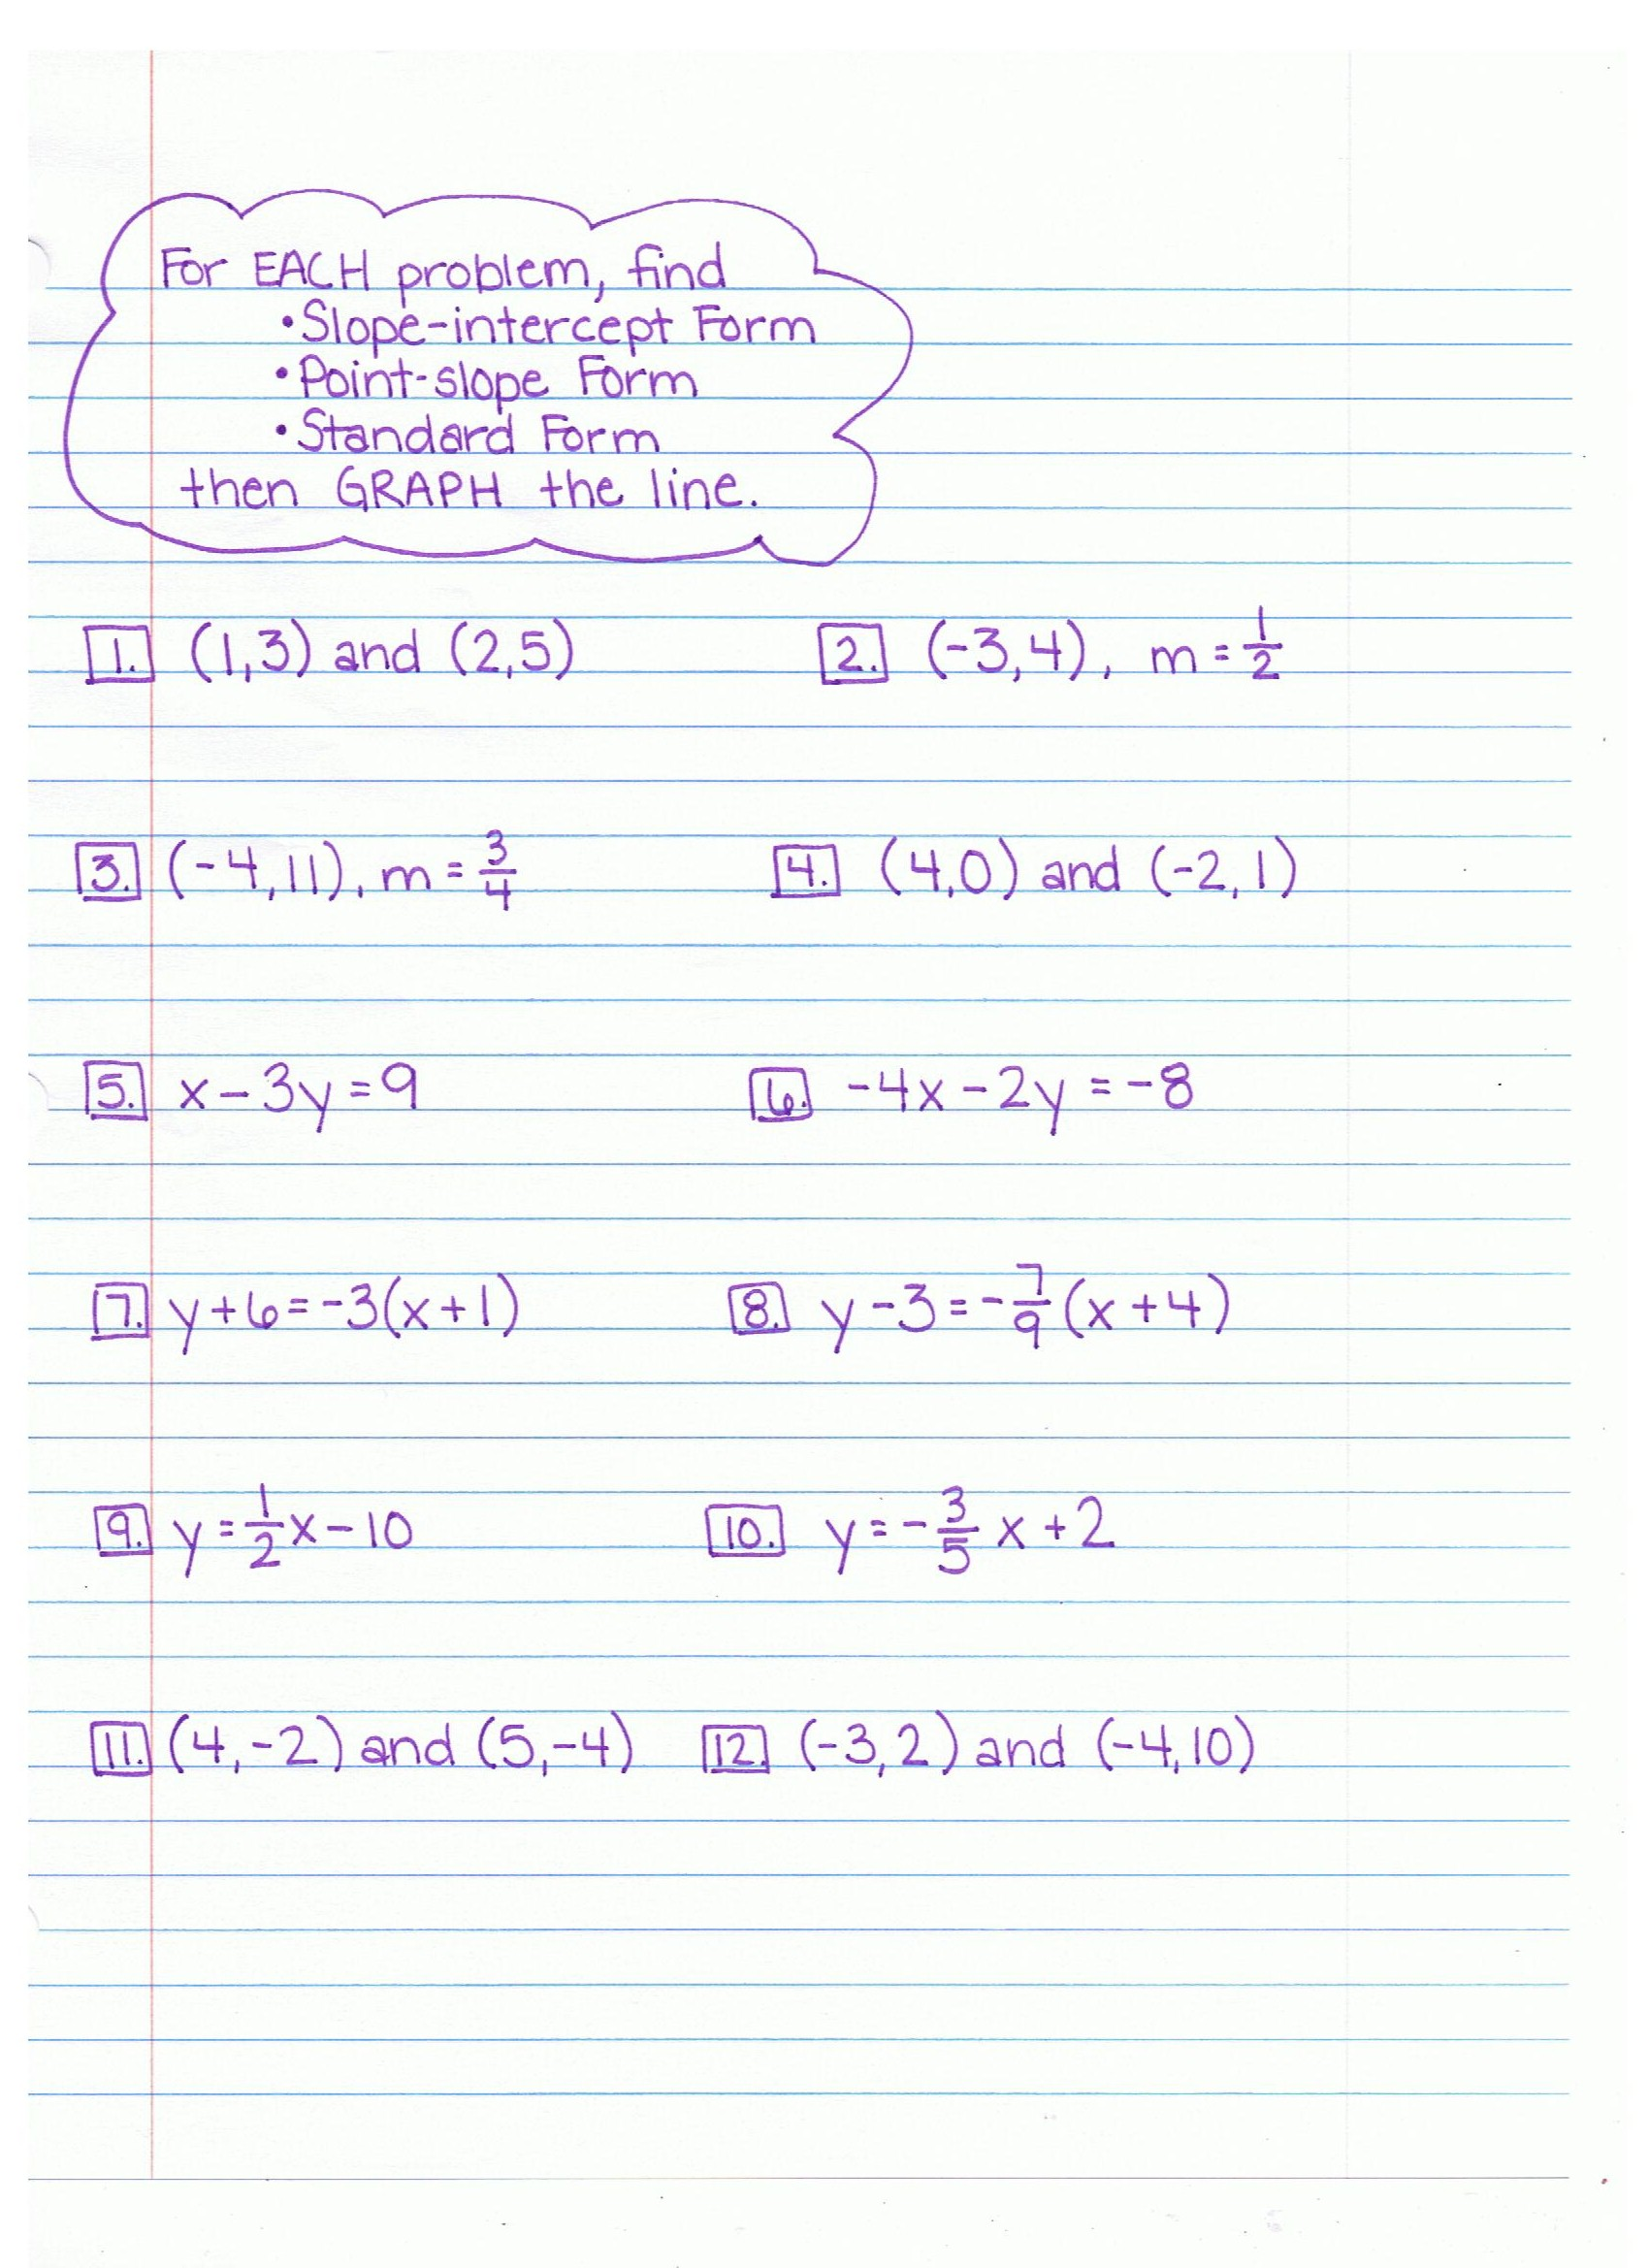 Linear Word Problems Common Core Algebra 1 Homework Answers